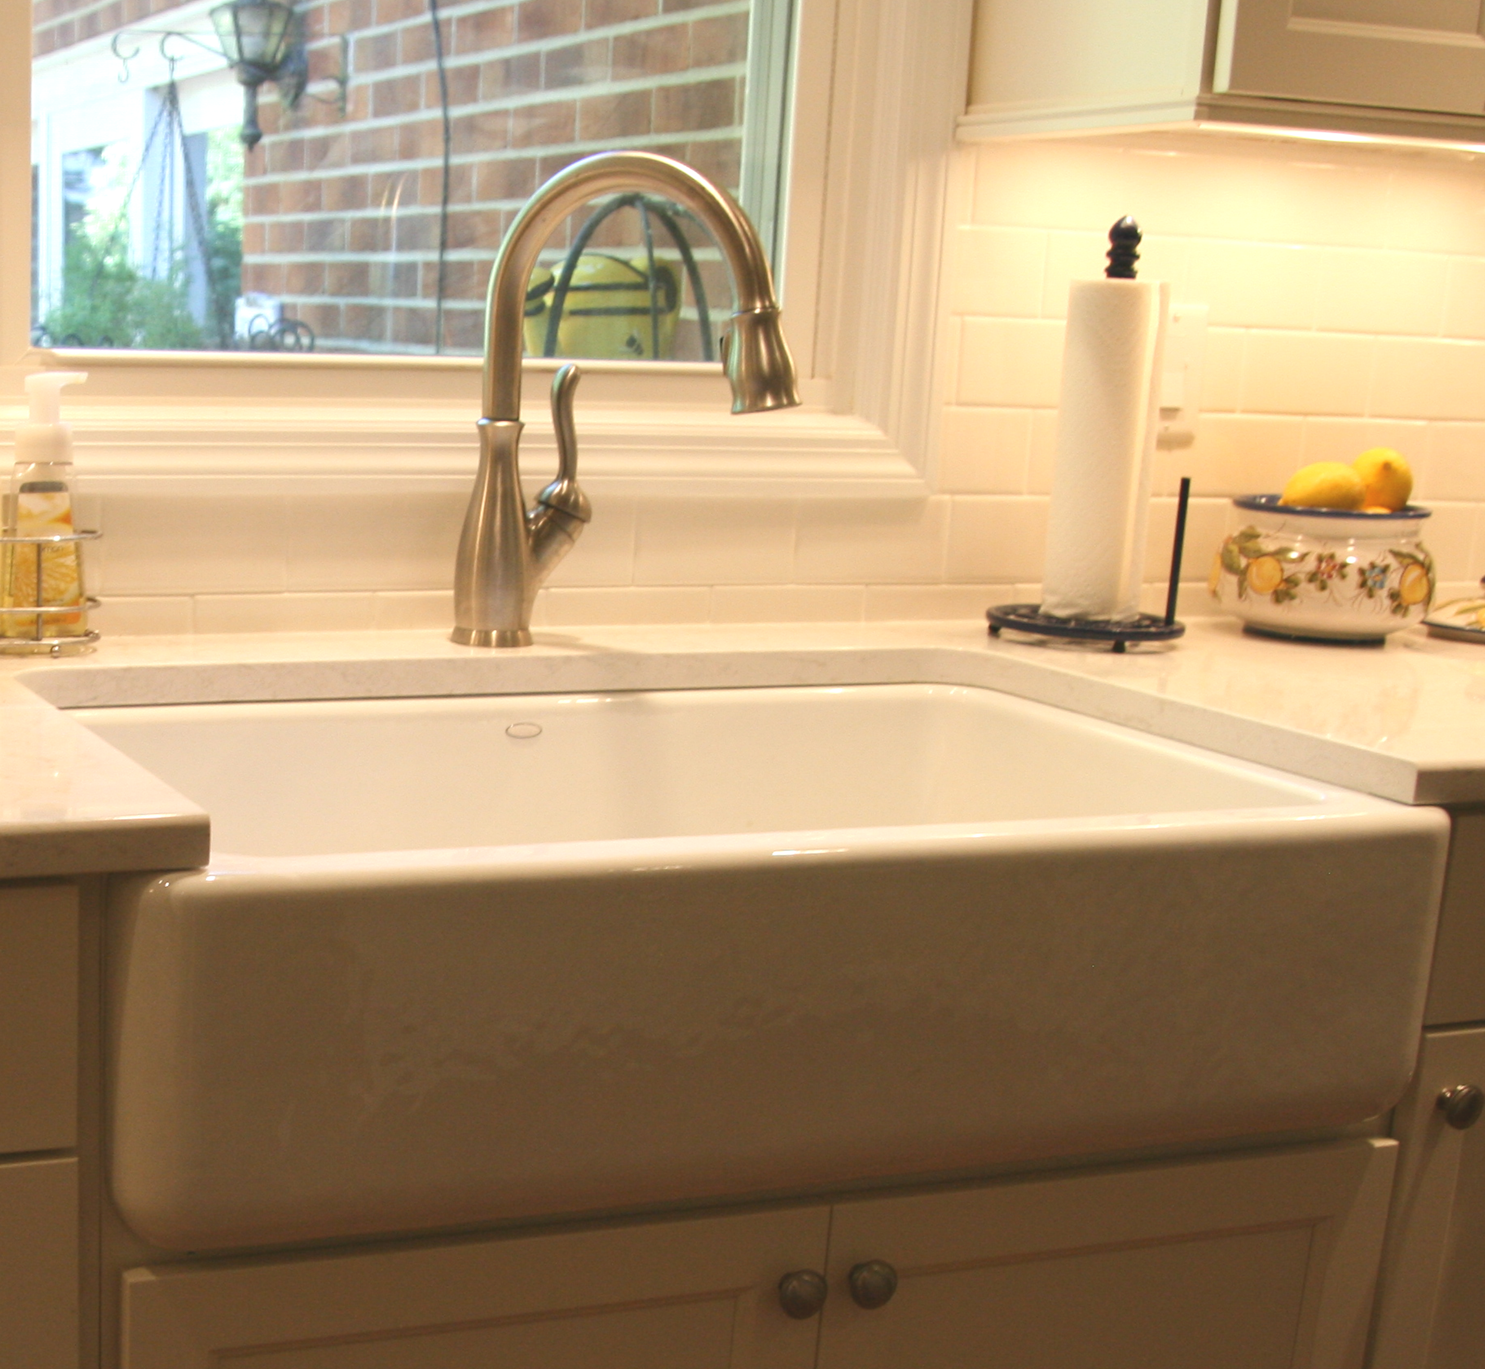 and the Kitchen Sink!